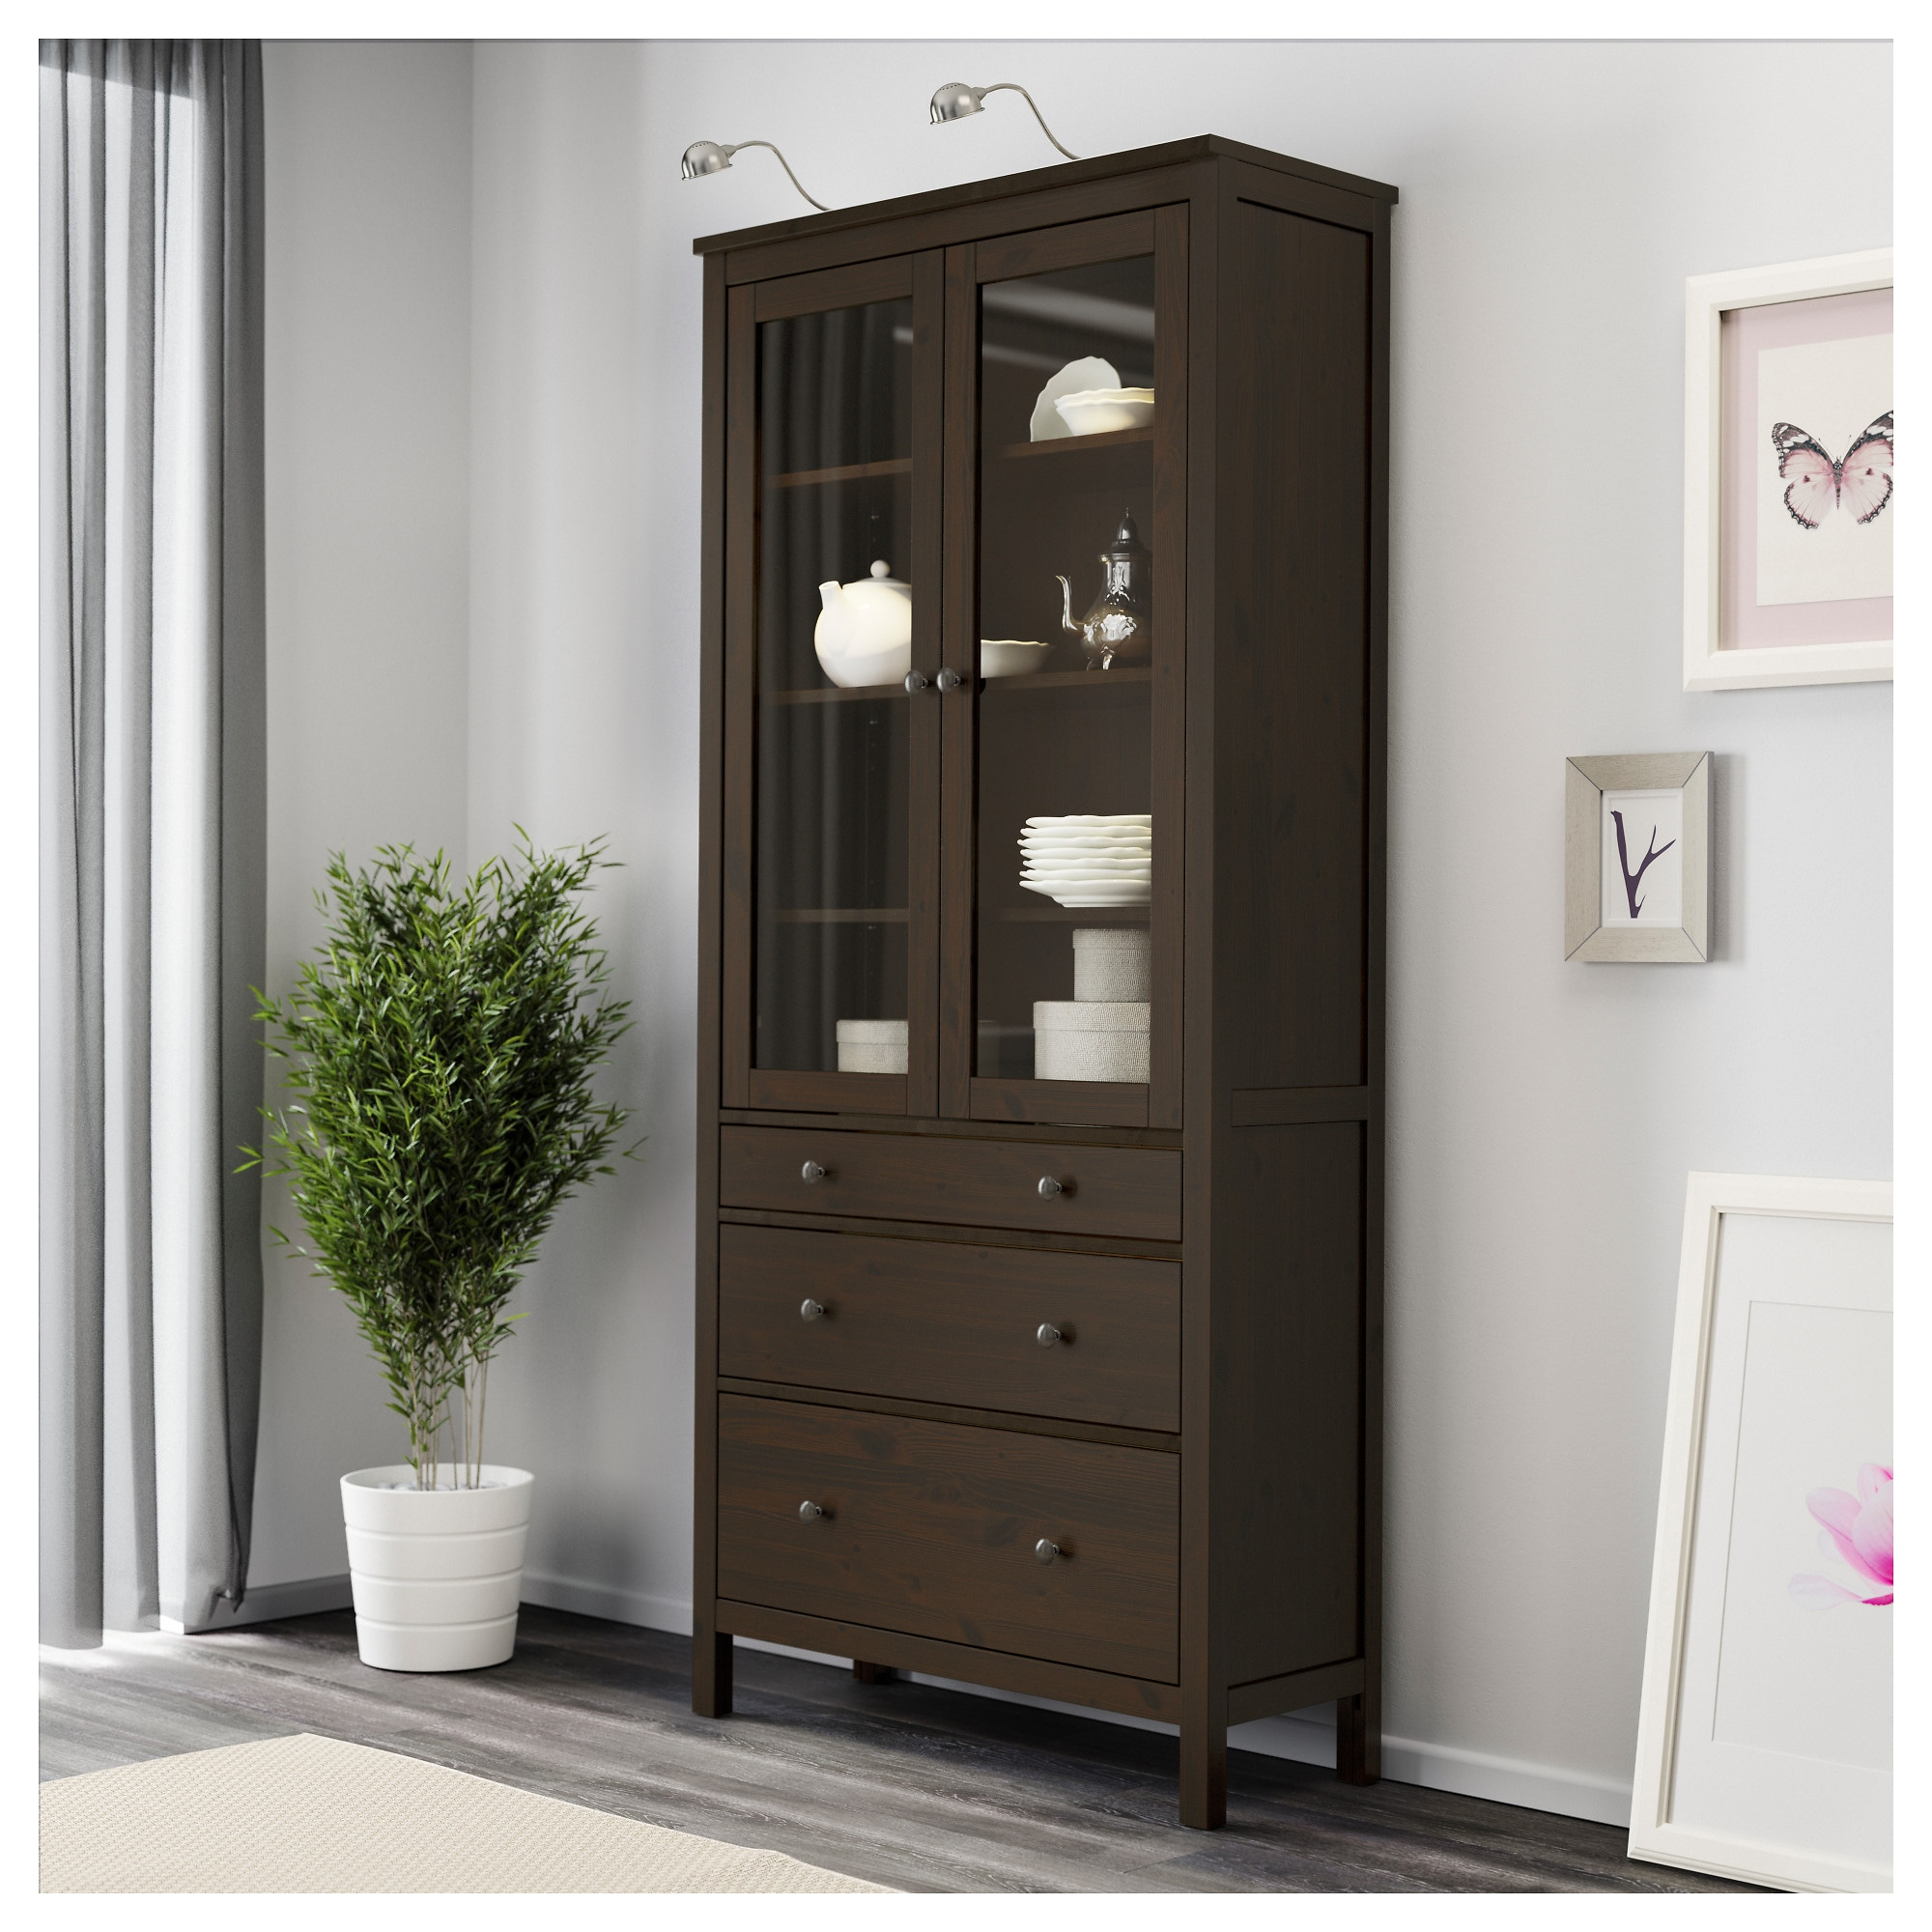 Hemnes glass door cabinet with 3 drawers light brown ikea eventshaper